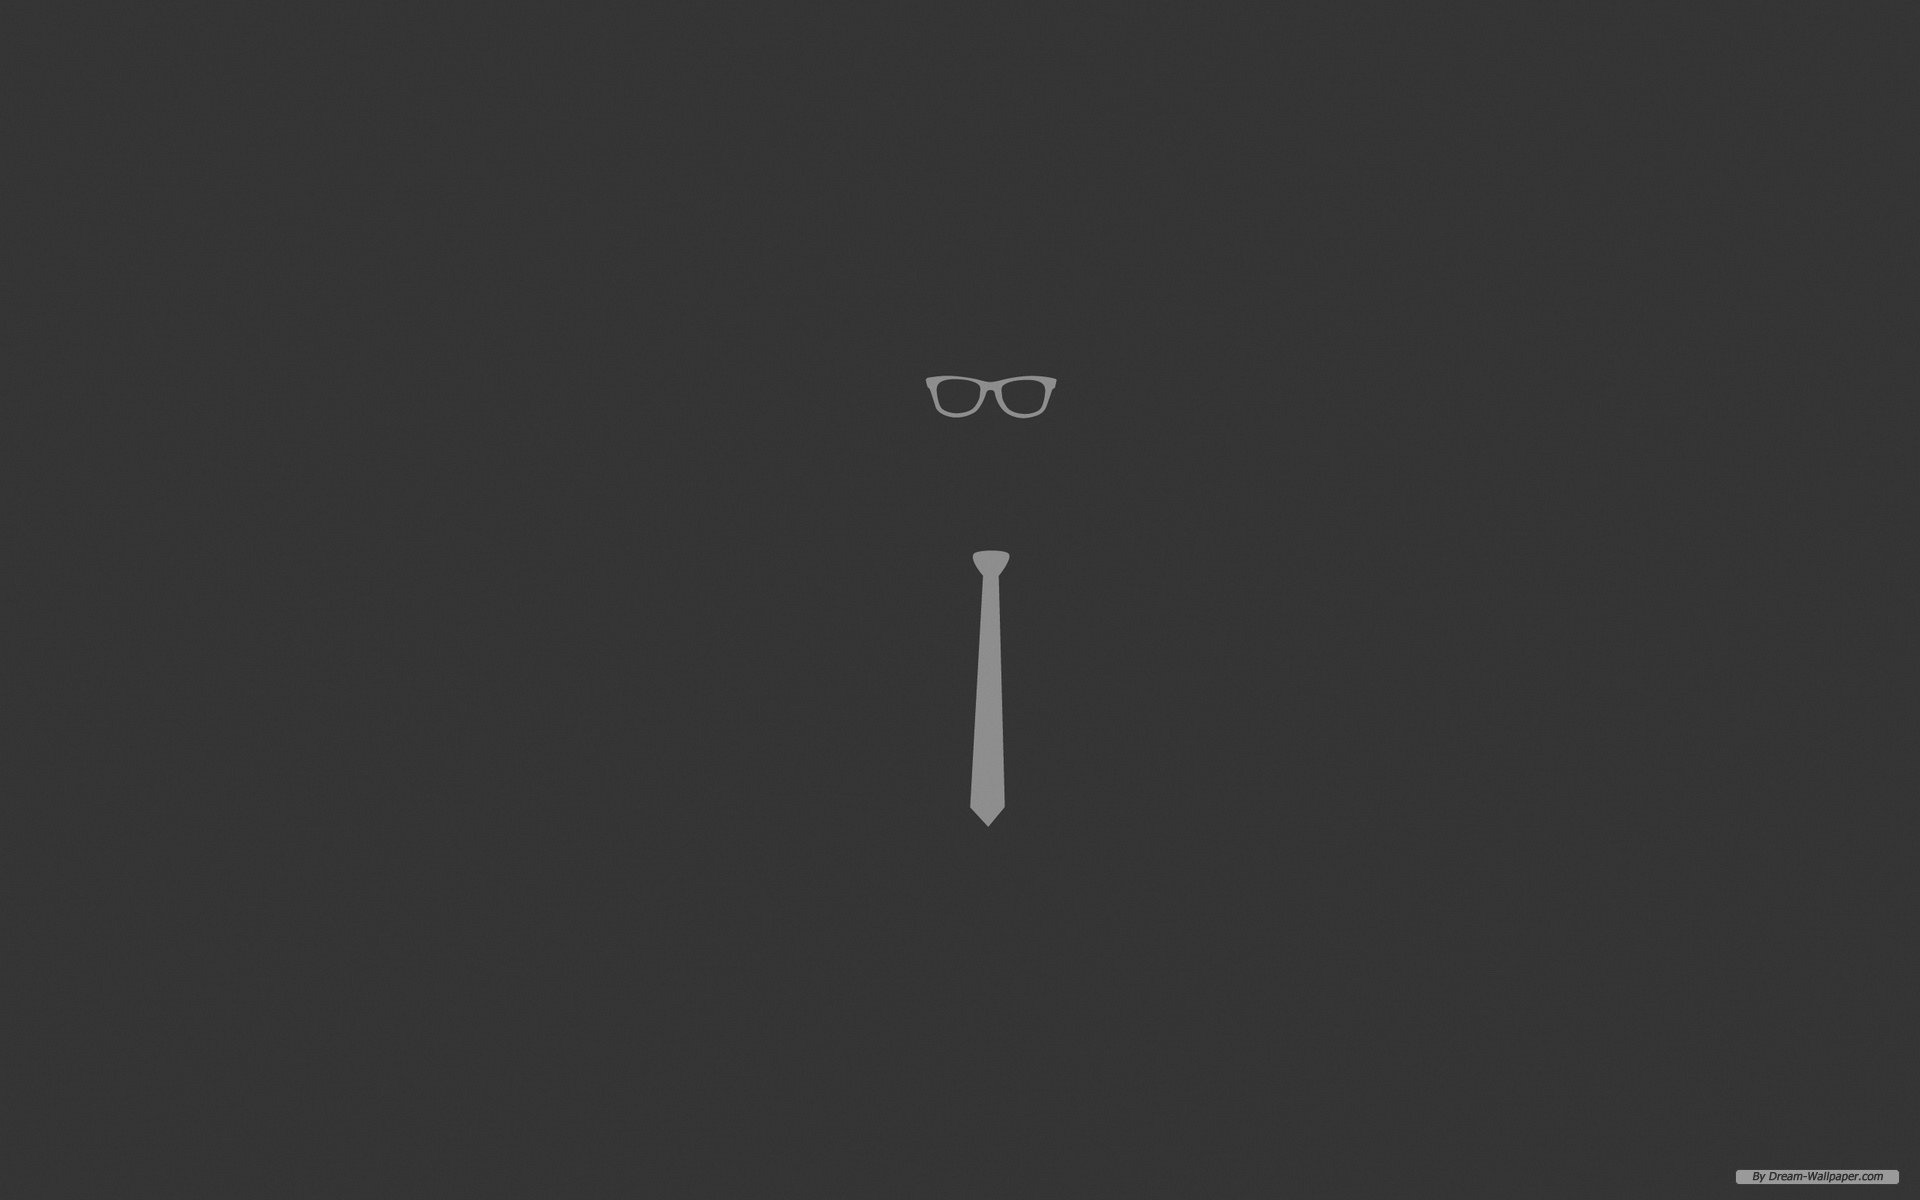 Minimalist art wallpaper wallpapersafari for Minimal design art